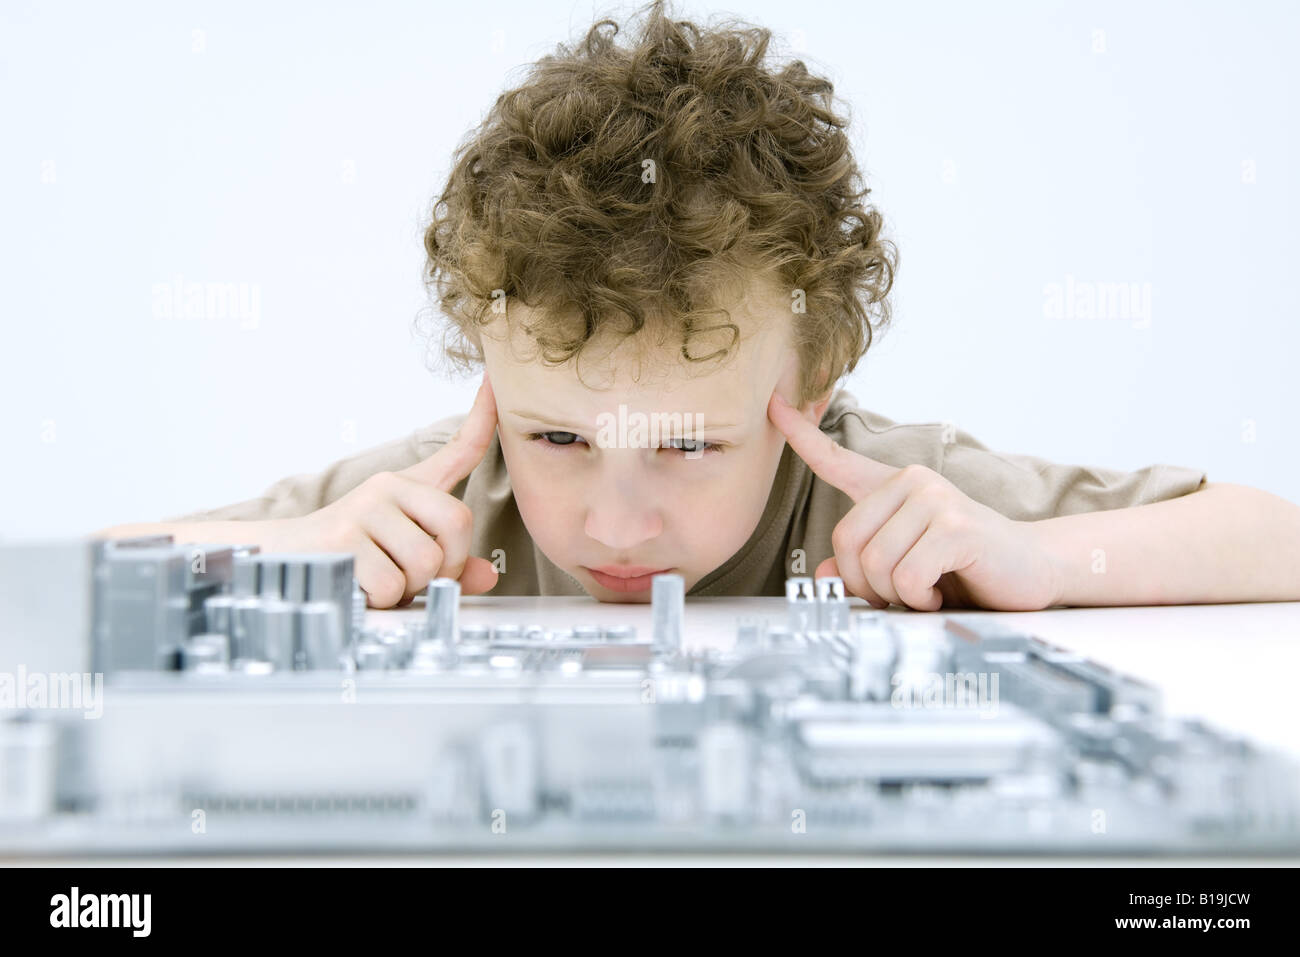 Boy looking at circuit board, holding fingers to his temples - Stock Image